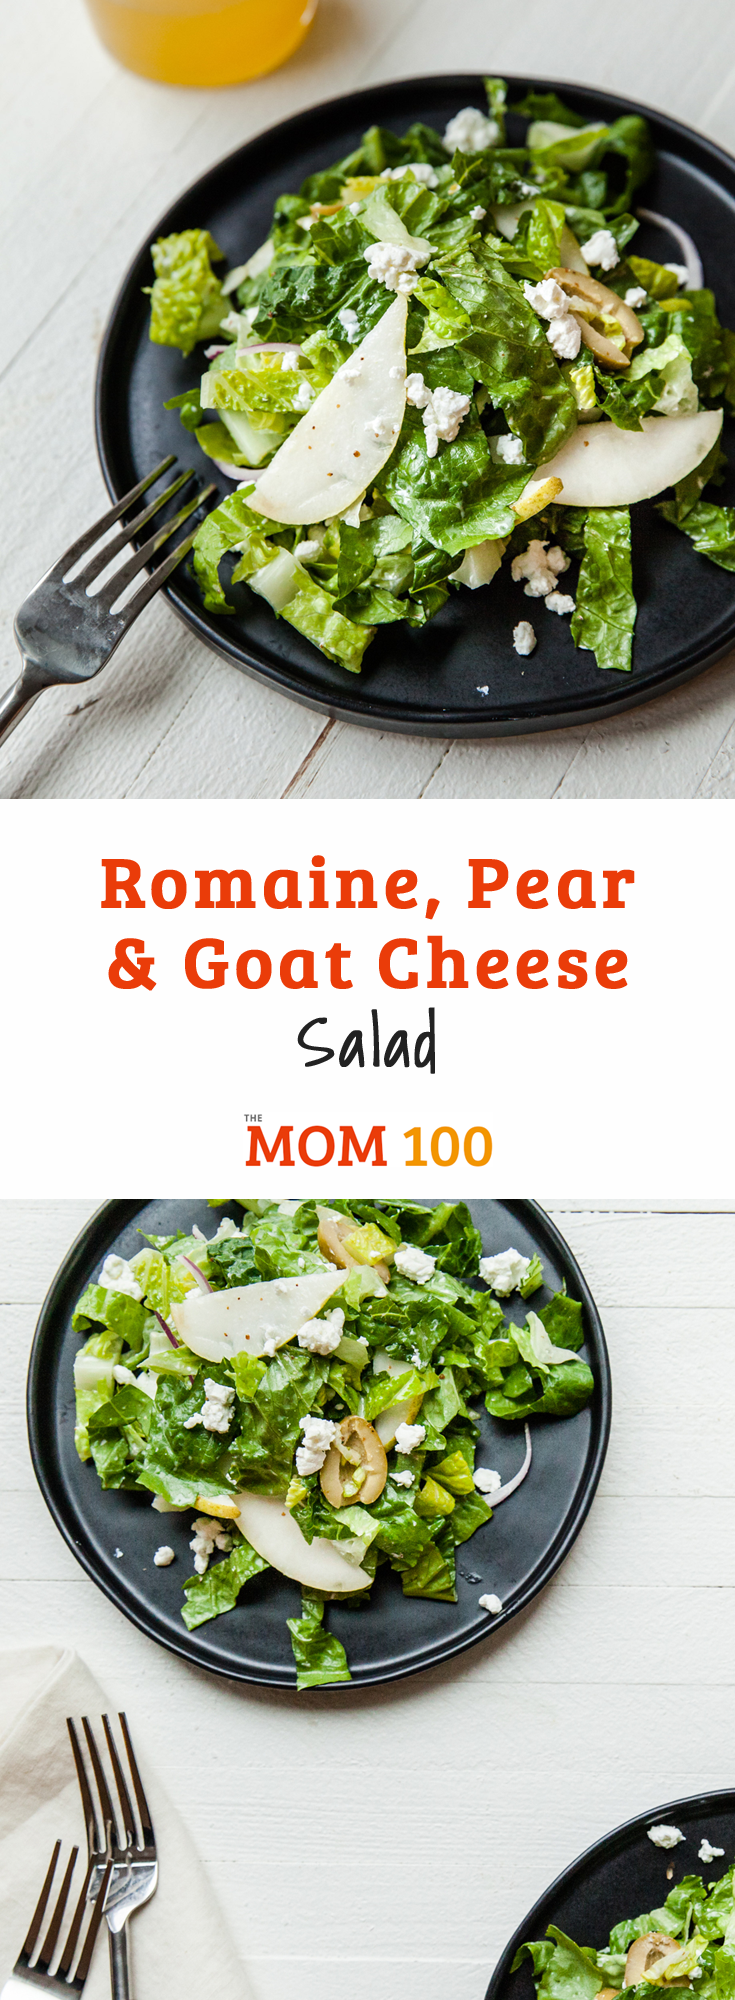 Serve this Romaine, Pear and Goat Cheese Salad with any fall meal. You can also add a handful of dried cranberries for color and a burst of sweet tartness.